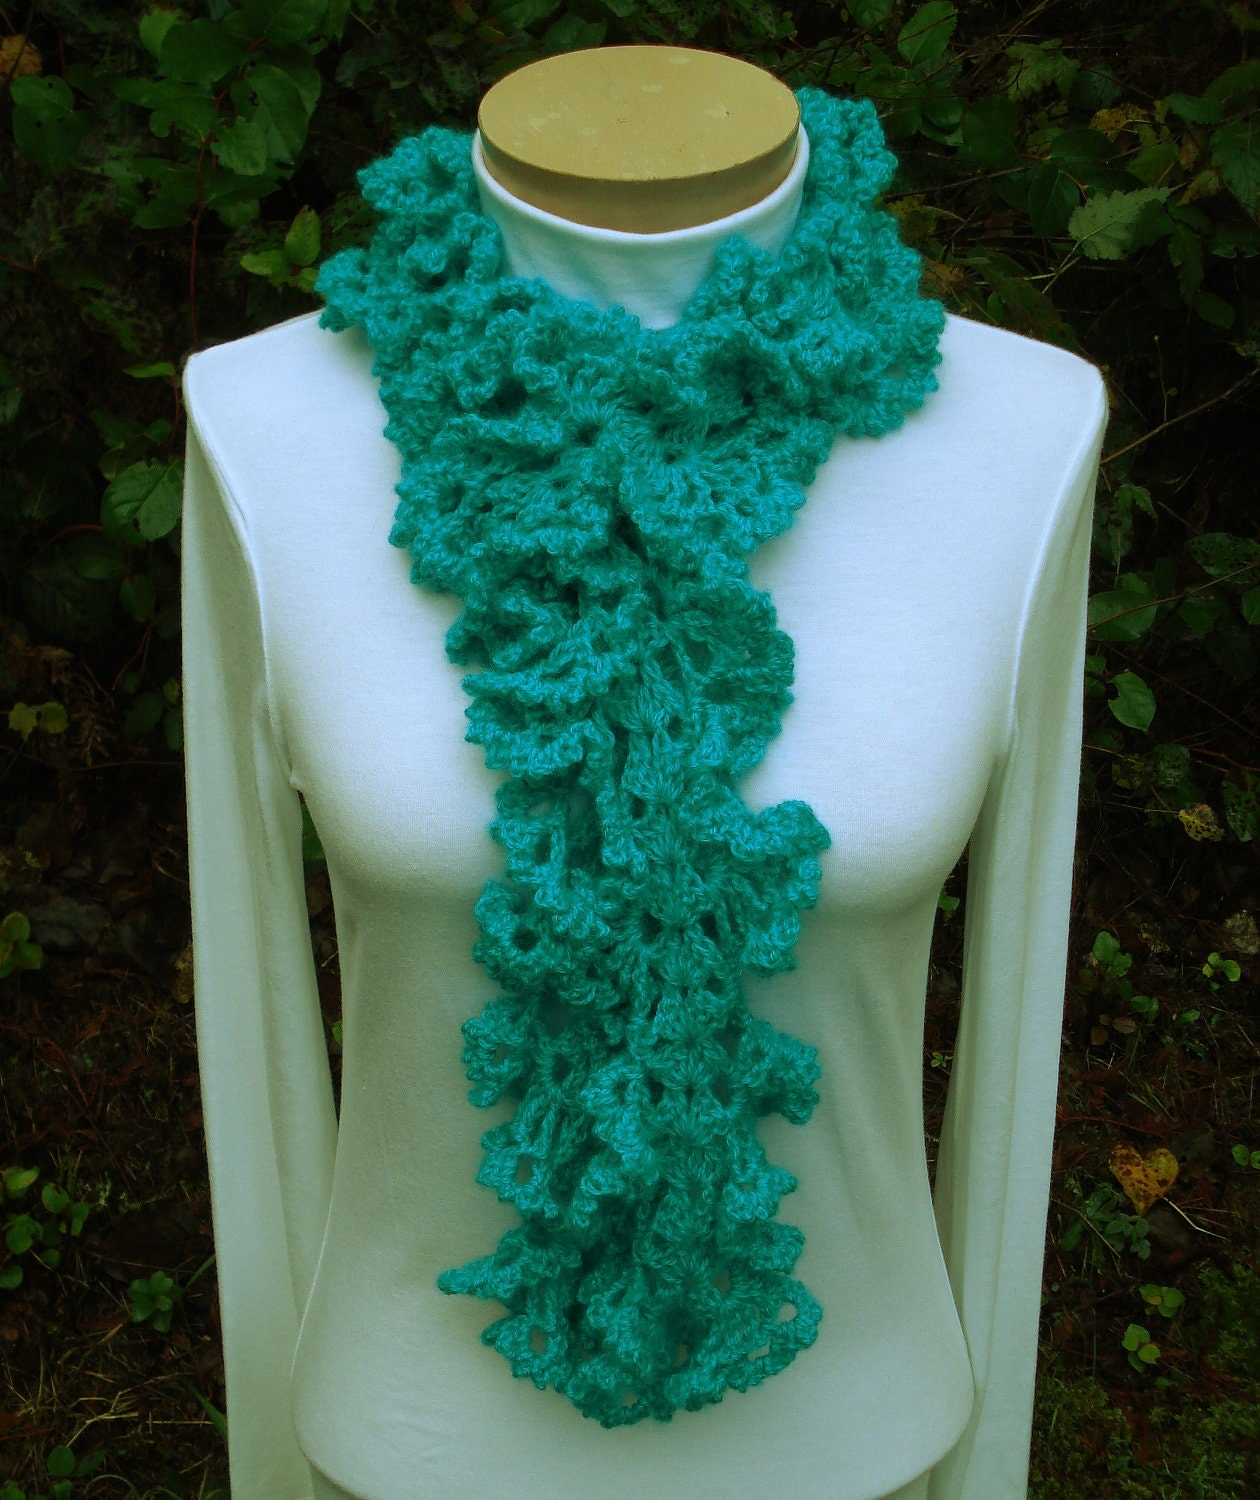 Crochet Patterns Ruffle Scarf : Crochet Pattern PDF Ruffled Lace Scarf PA-132 by stellardreams